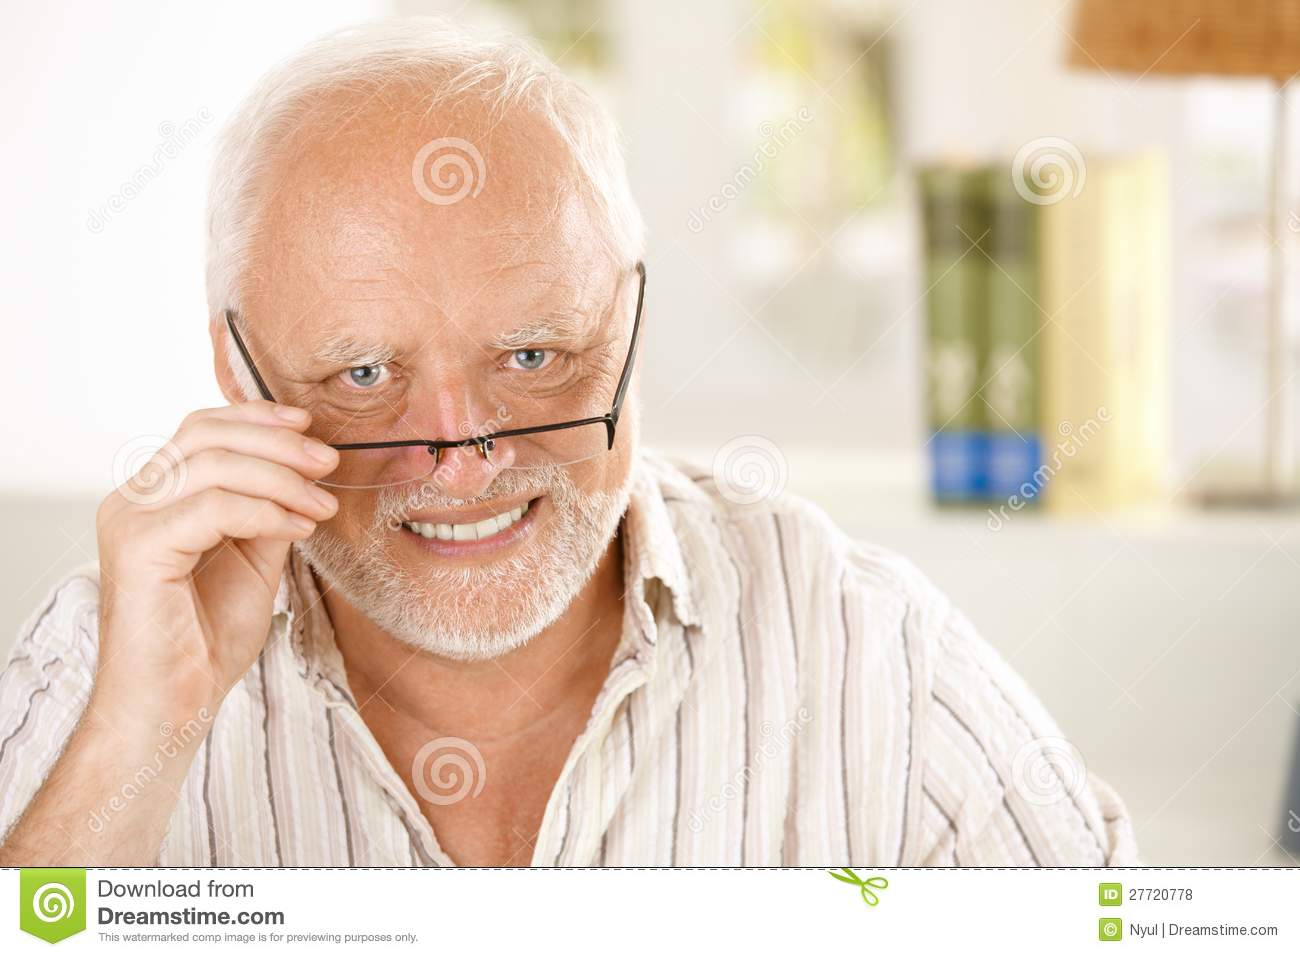 Download Portrait Of Happy Older Man Wearing Glasses Stock Photo - Image of european, lifestyle: 27720778